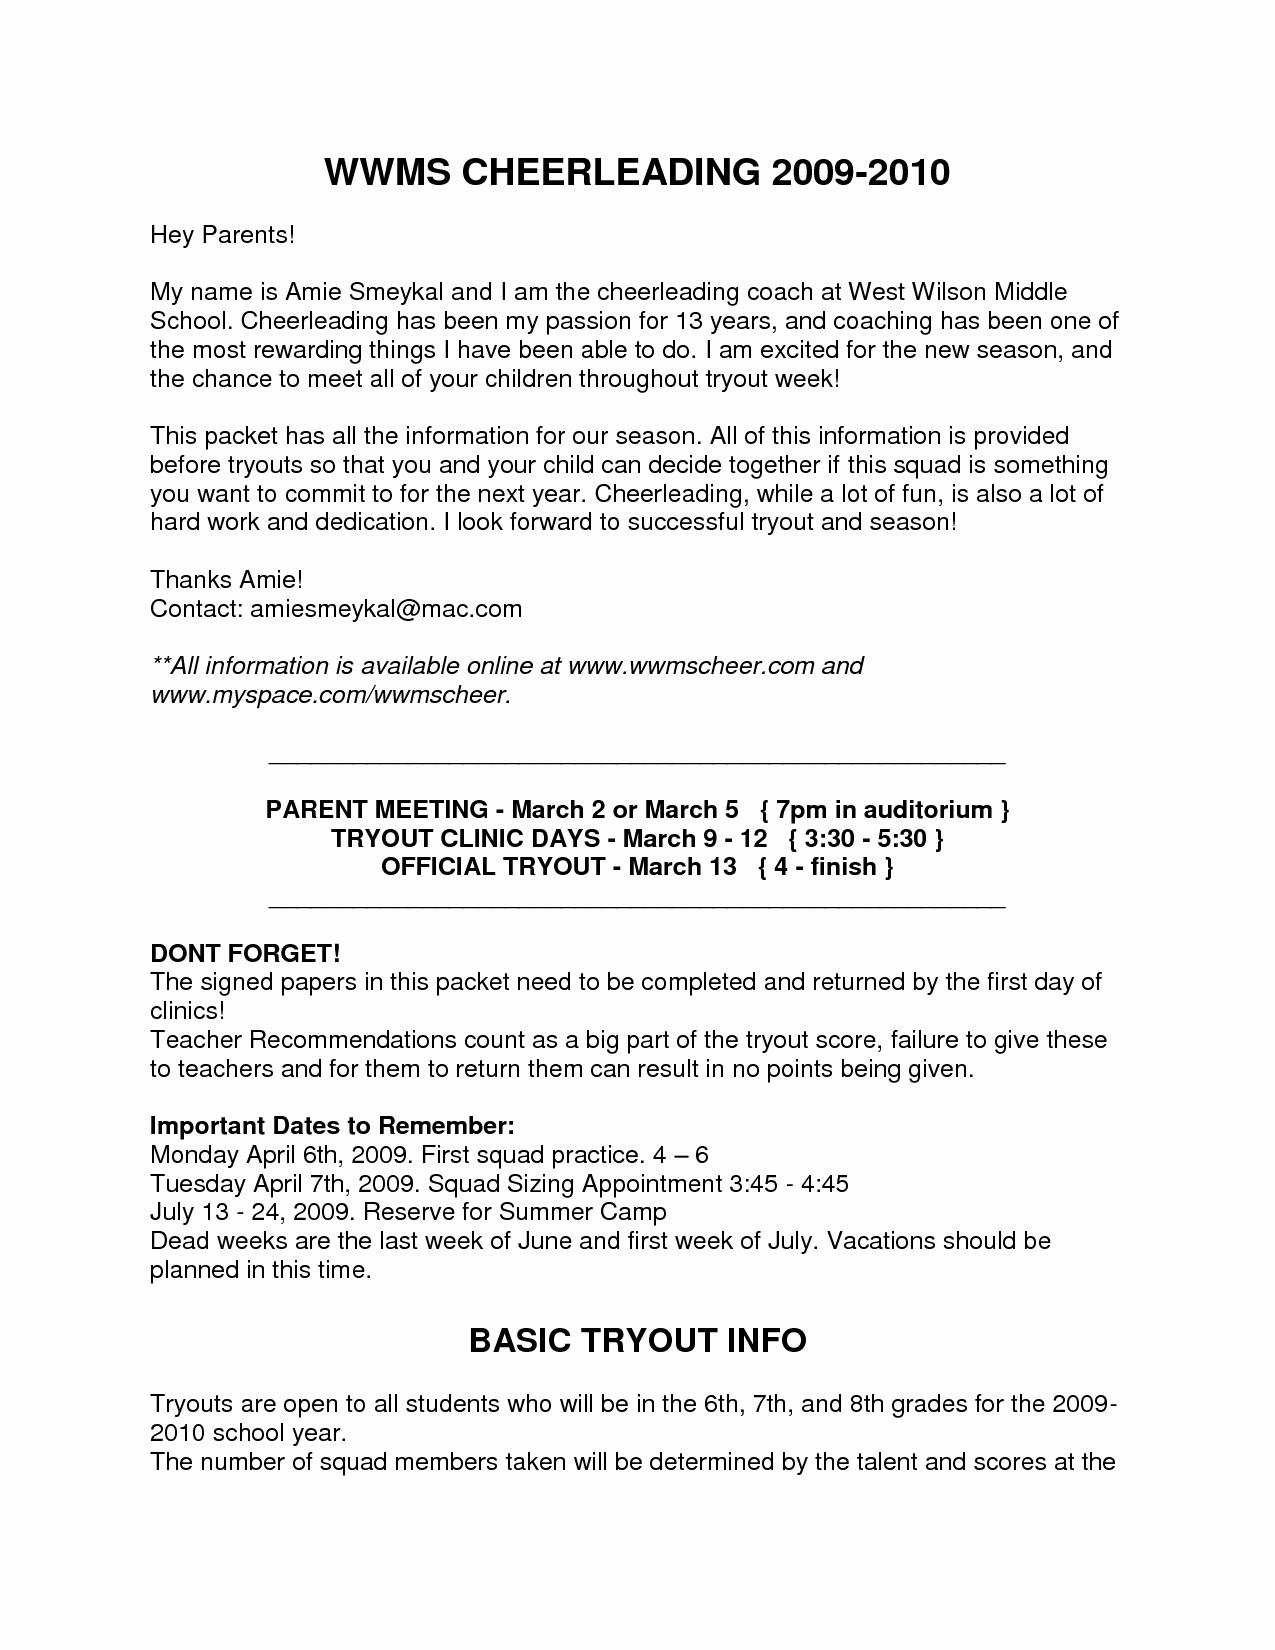 summer camp letter to parents template Collection-Middle School Teacher Cover Letter Samplest Year New Soccer Coach Bank Resume Cv 13-b